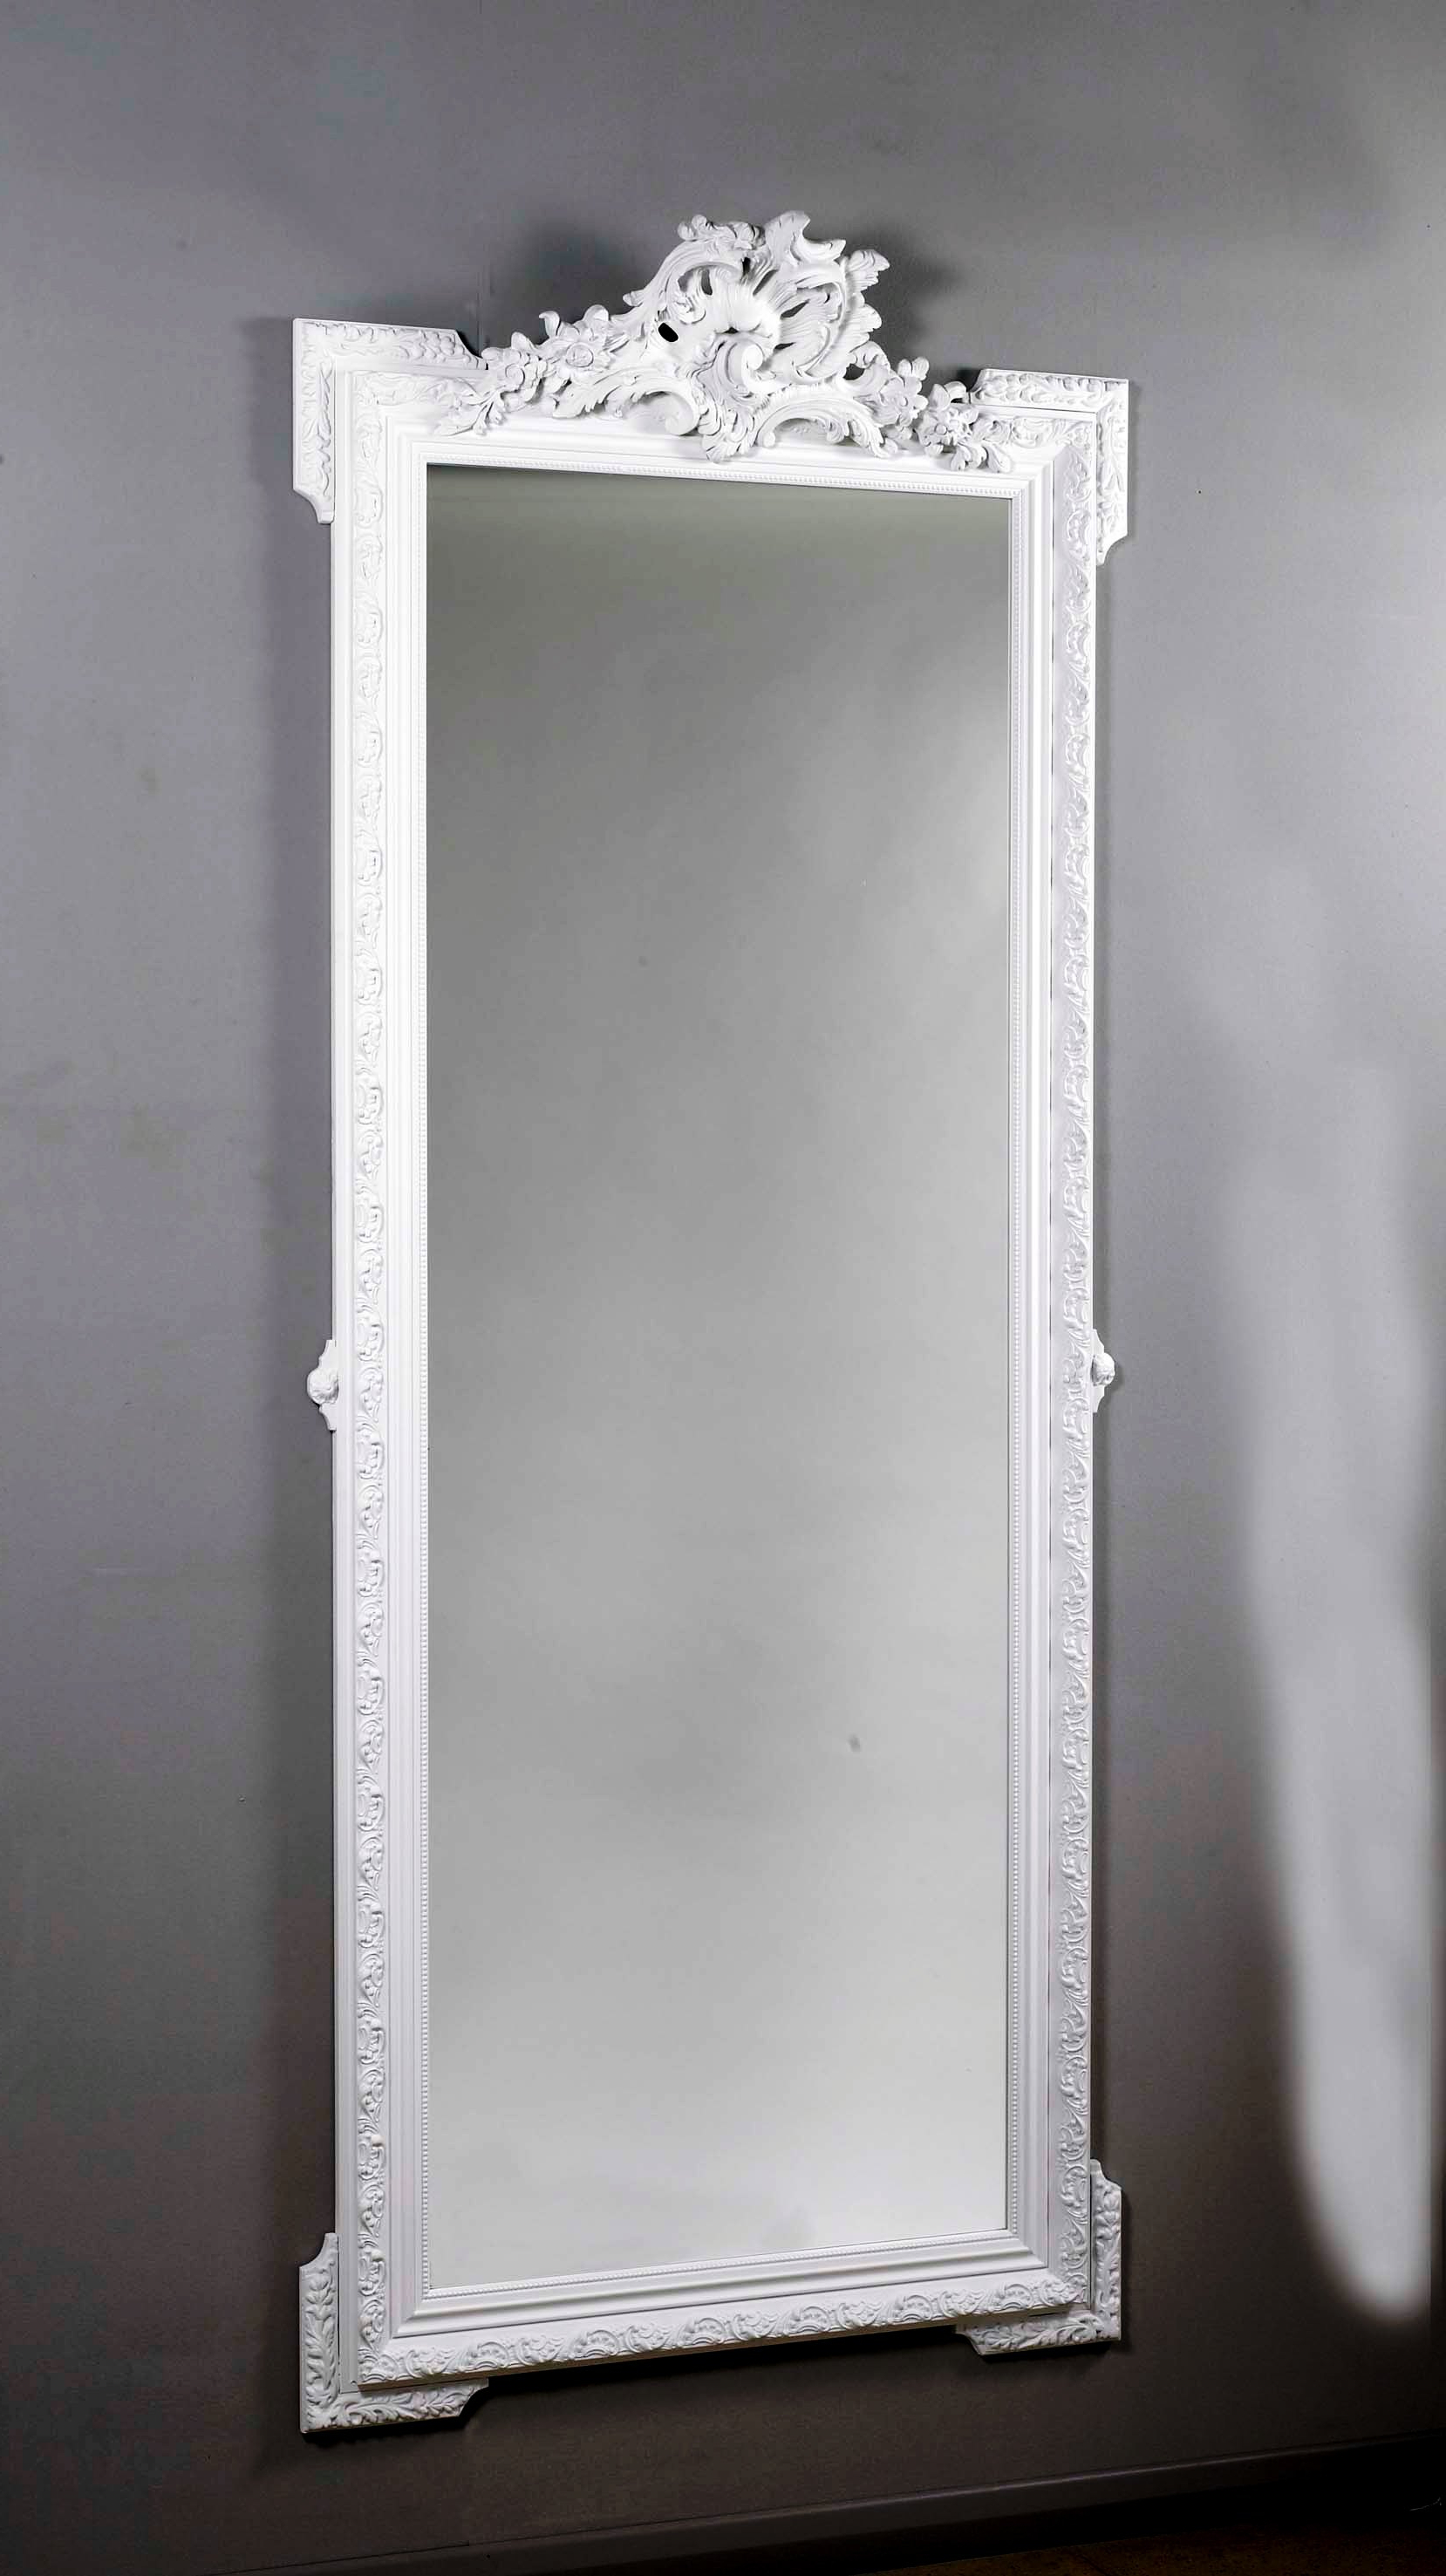 White Decorative Wall Mirrors Within Newest Romantica Grande White Wall Mirror (View 4 of 20)